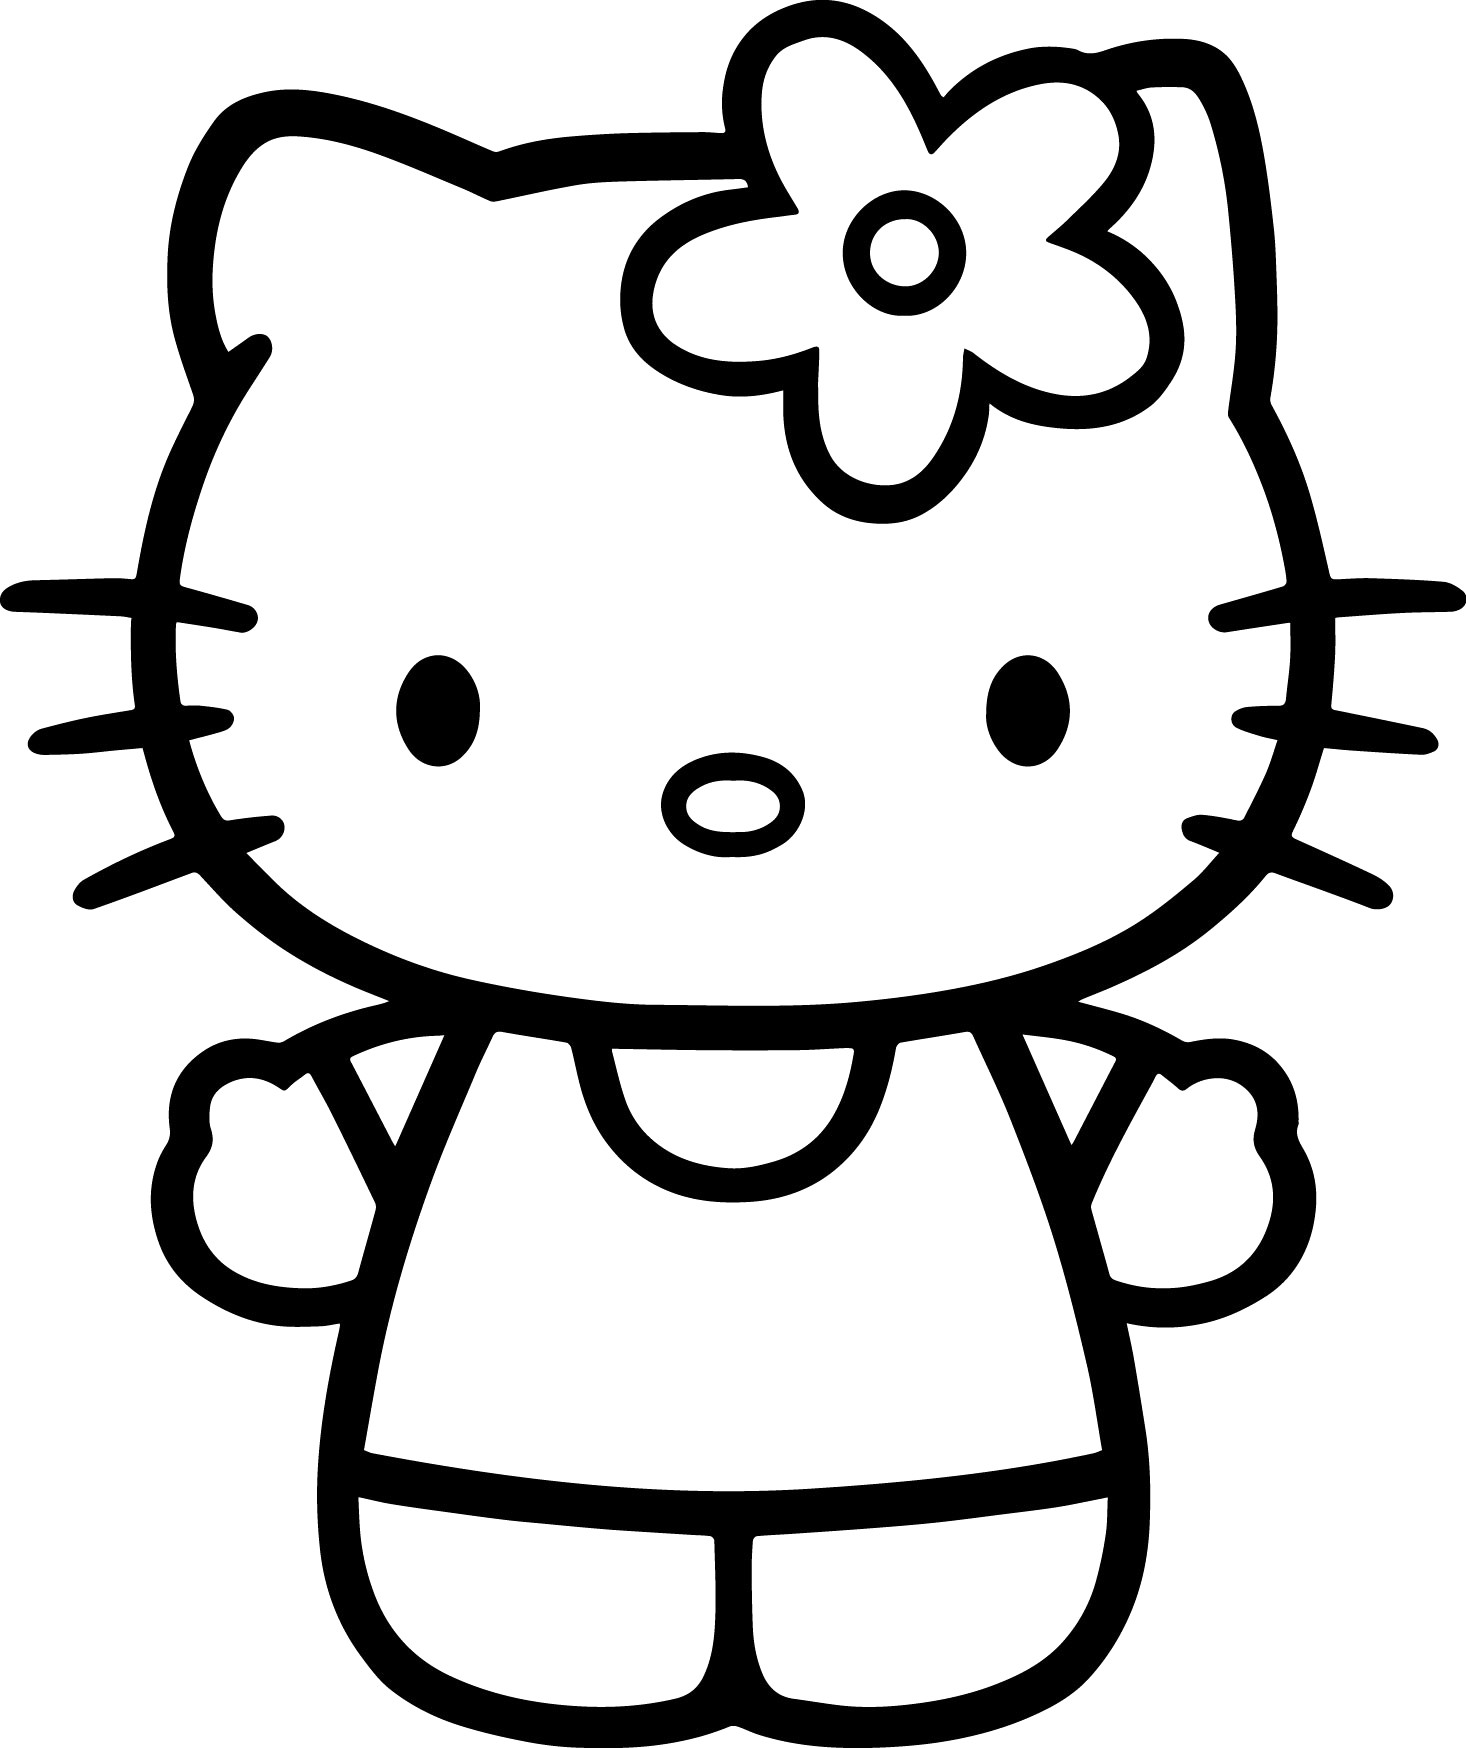 hellokitty drawing how to draw hello kitty sketchok step by step drawing drawing hellokitty